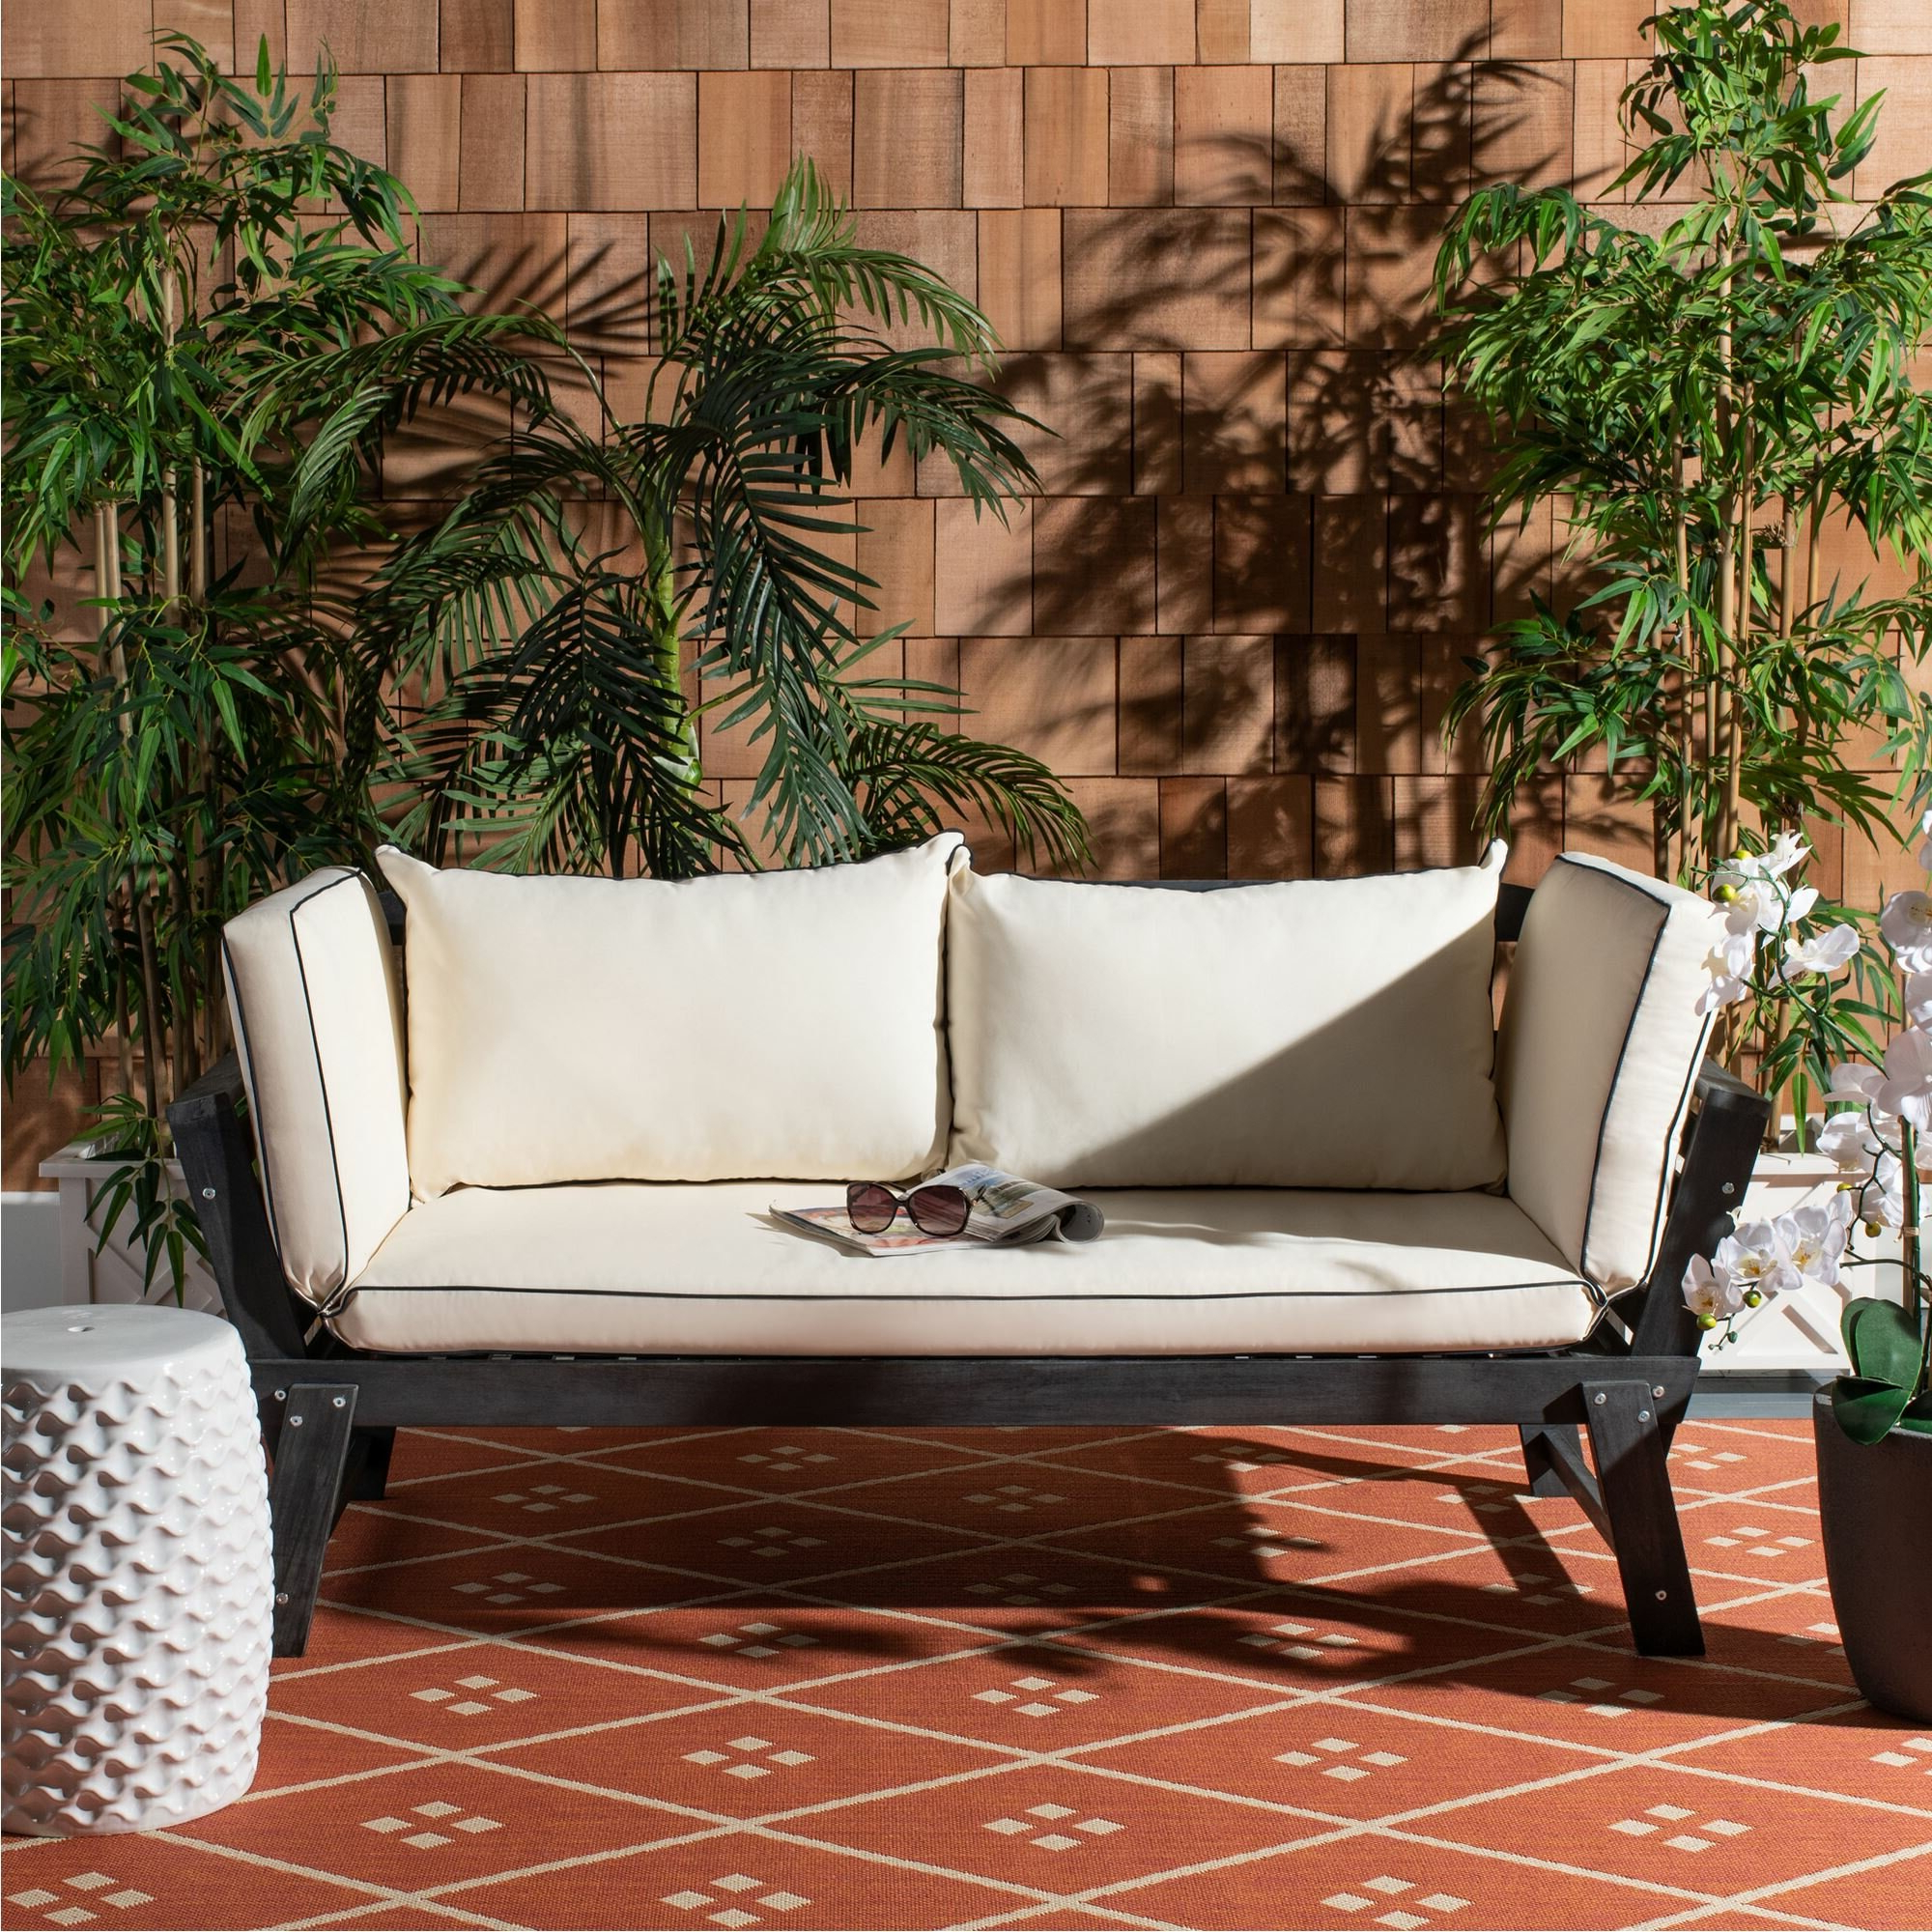 Most Recent Freeport Patio Daybeds With Cushion In Birch Lane™ Heritage Beal Patio Daybed With Cushions (View 18 of 20)